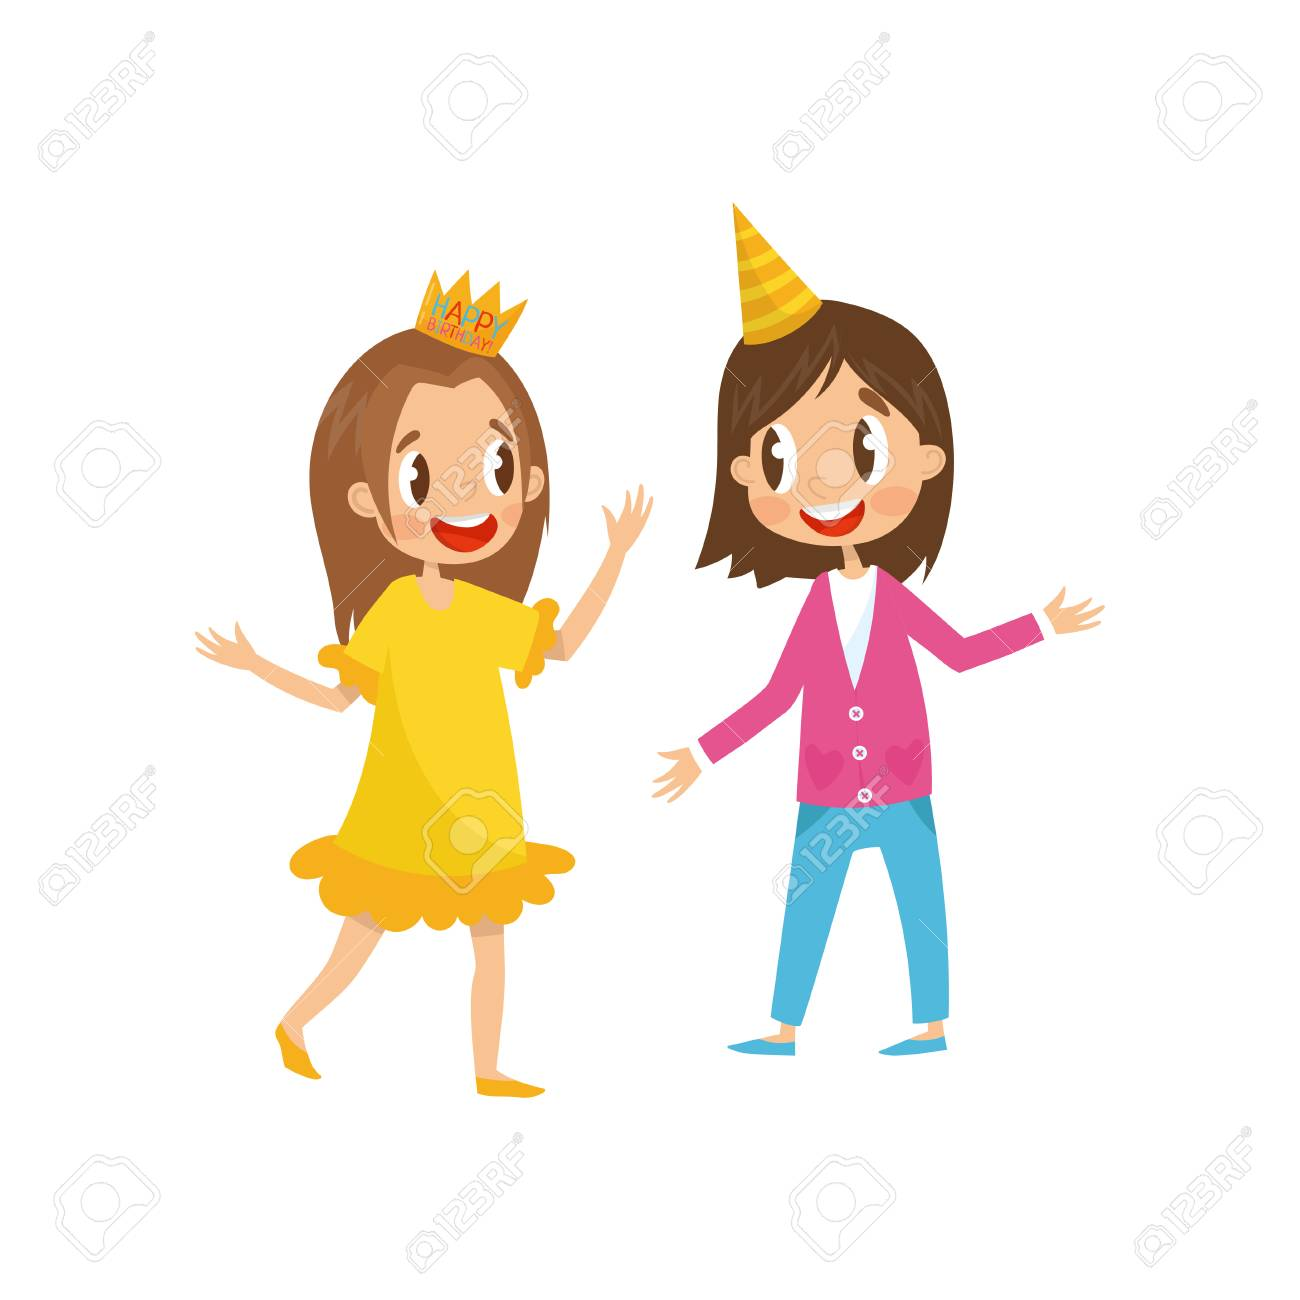 Two Cute Girls In Party Hats Having Fun At Birthday Party Cartoon Royalty Free Cliparts Vectors And Stock Illustration Image 99658063